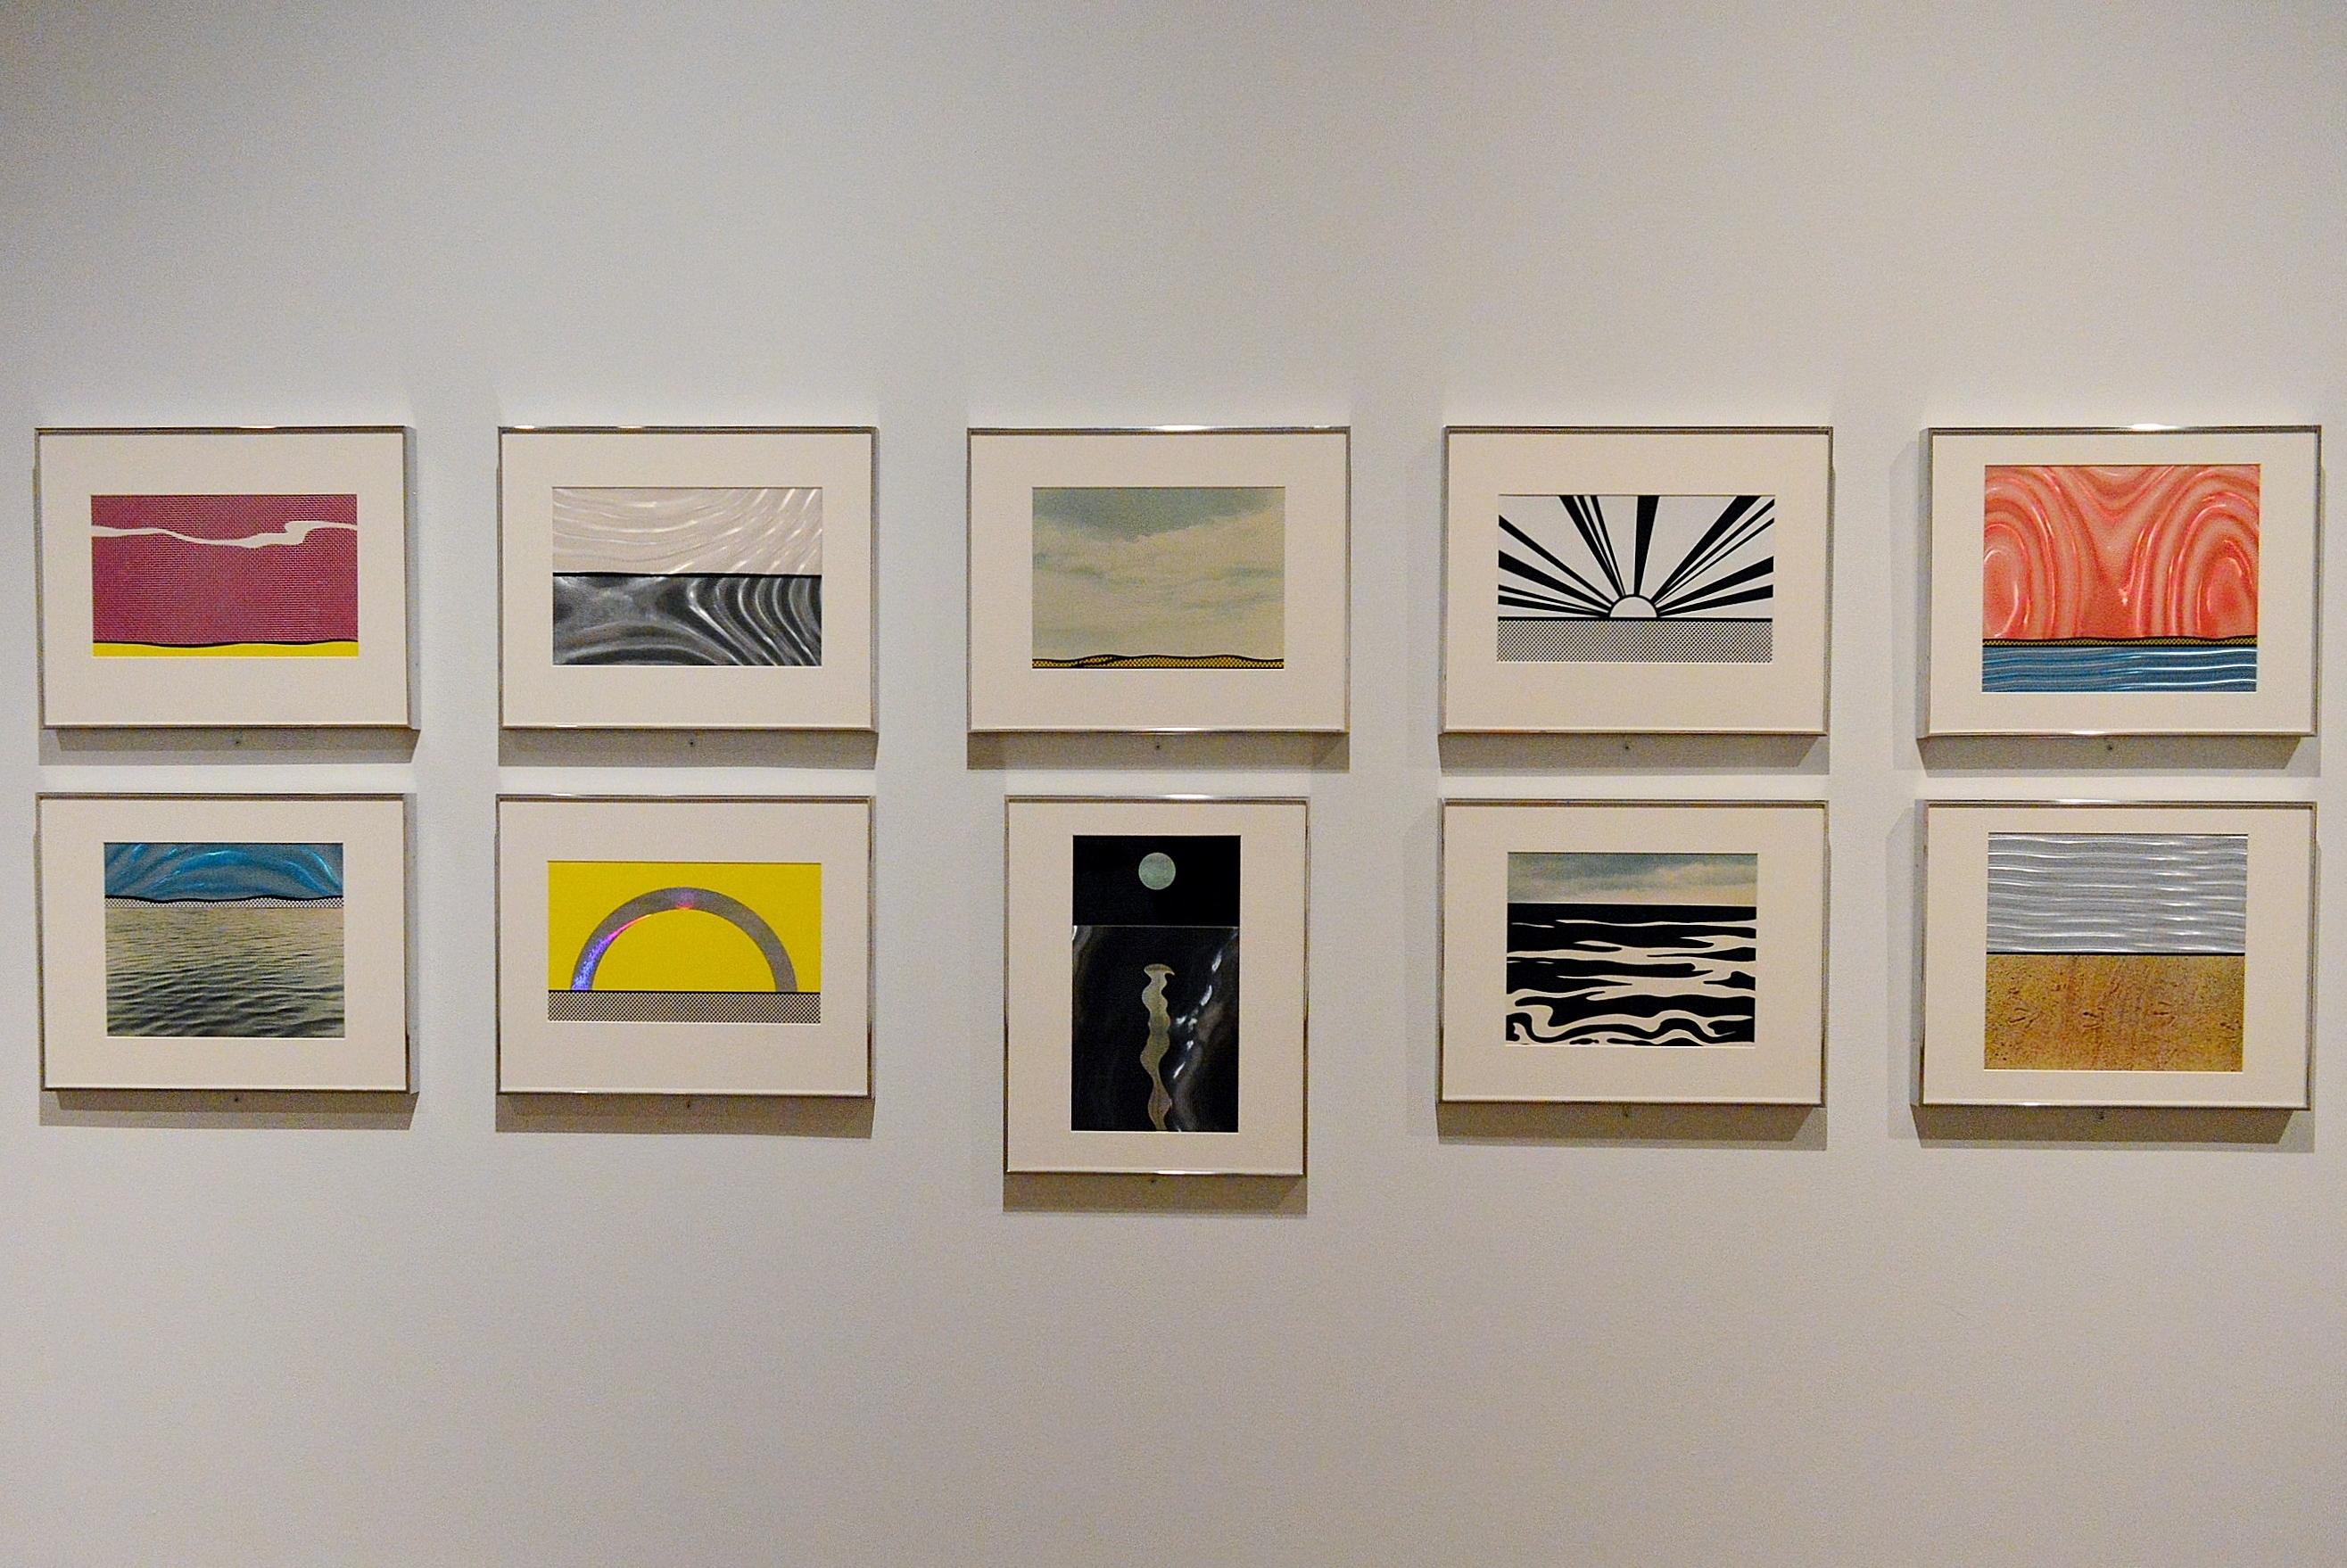 Rarely seen screenprints from Roy Lichtenstein's portfolio Ten Landscapes.